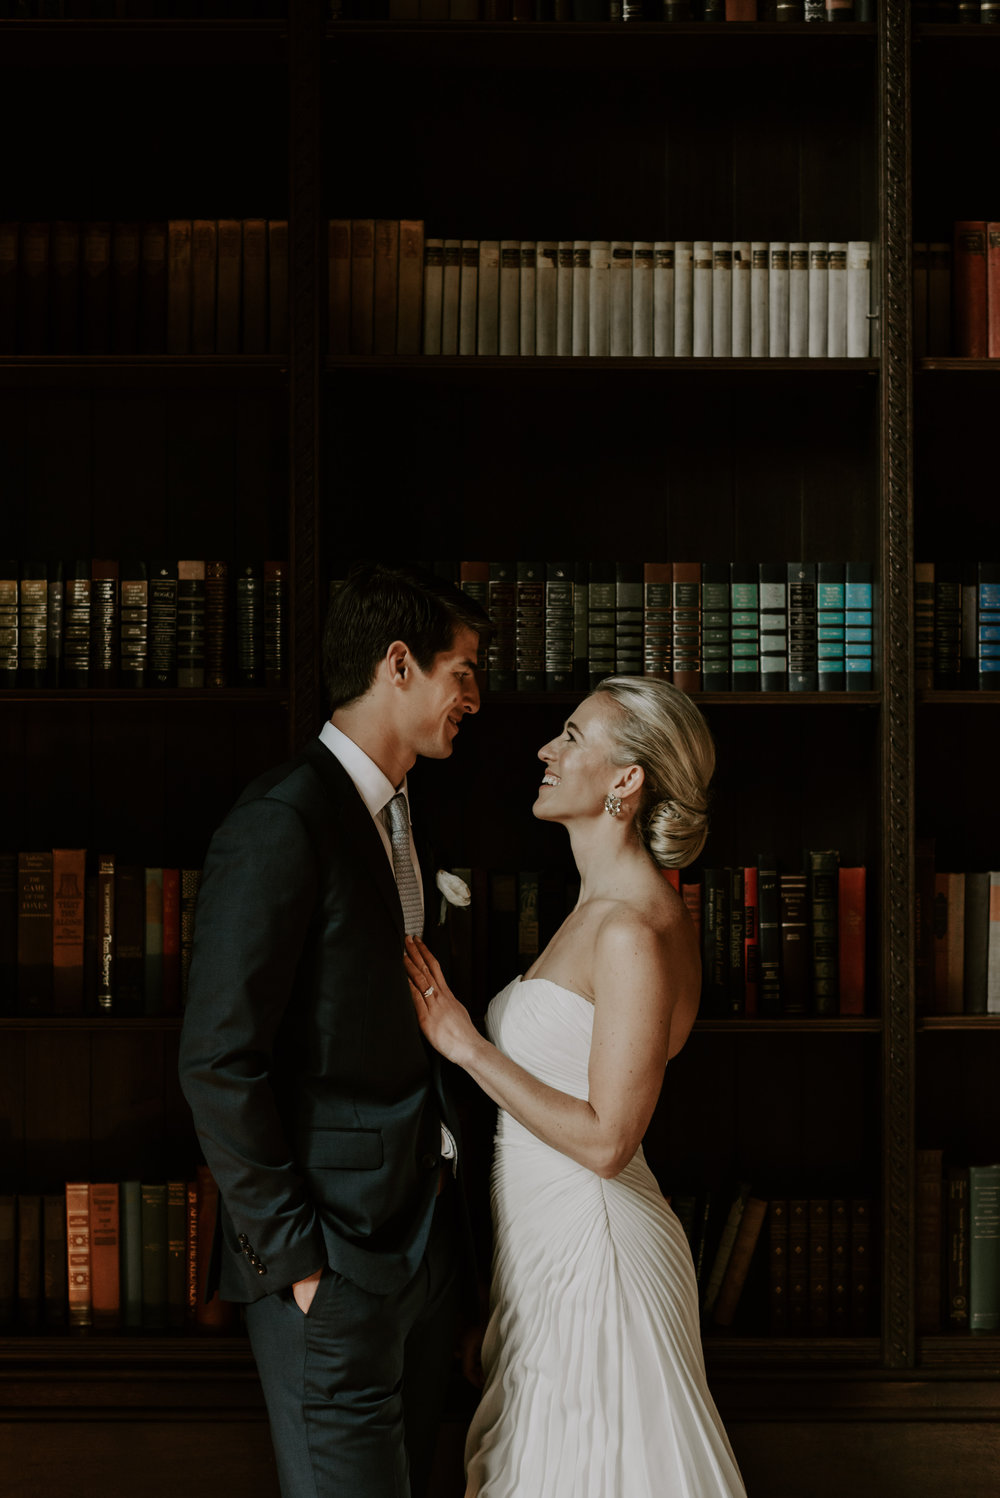 Moody Intimate Library Wedding | Boston Wedding Photographer | Madeline Rose Photography Co.